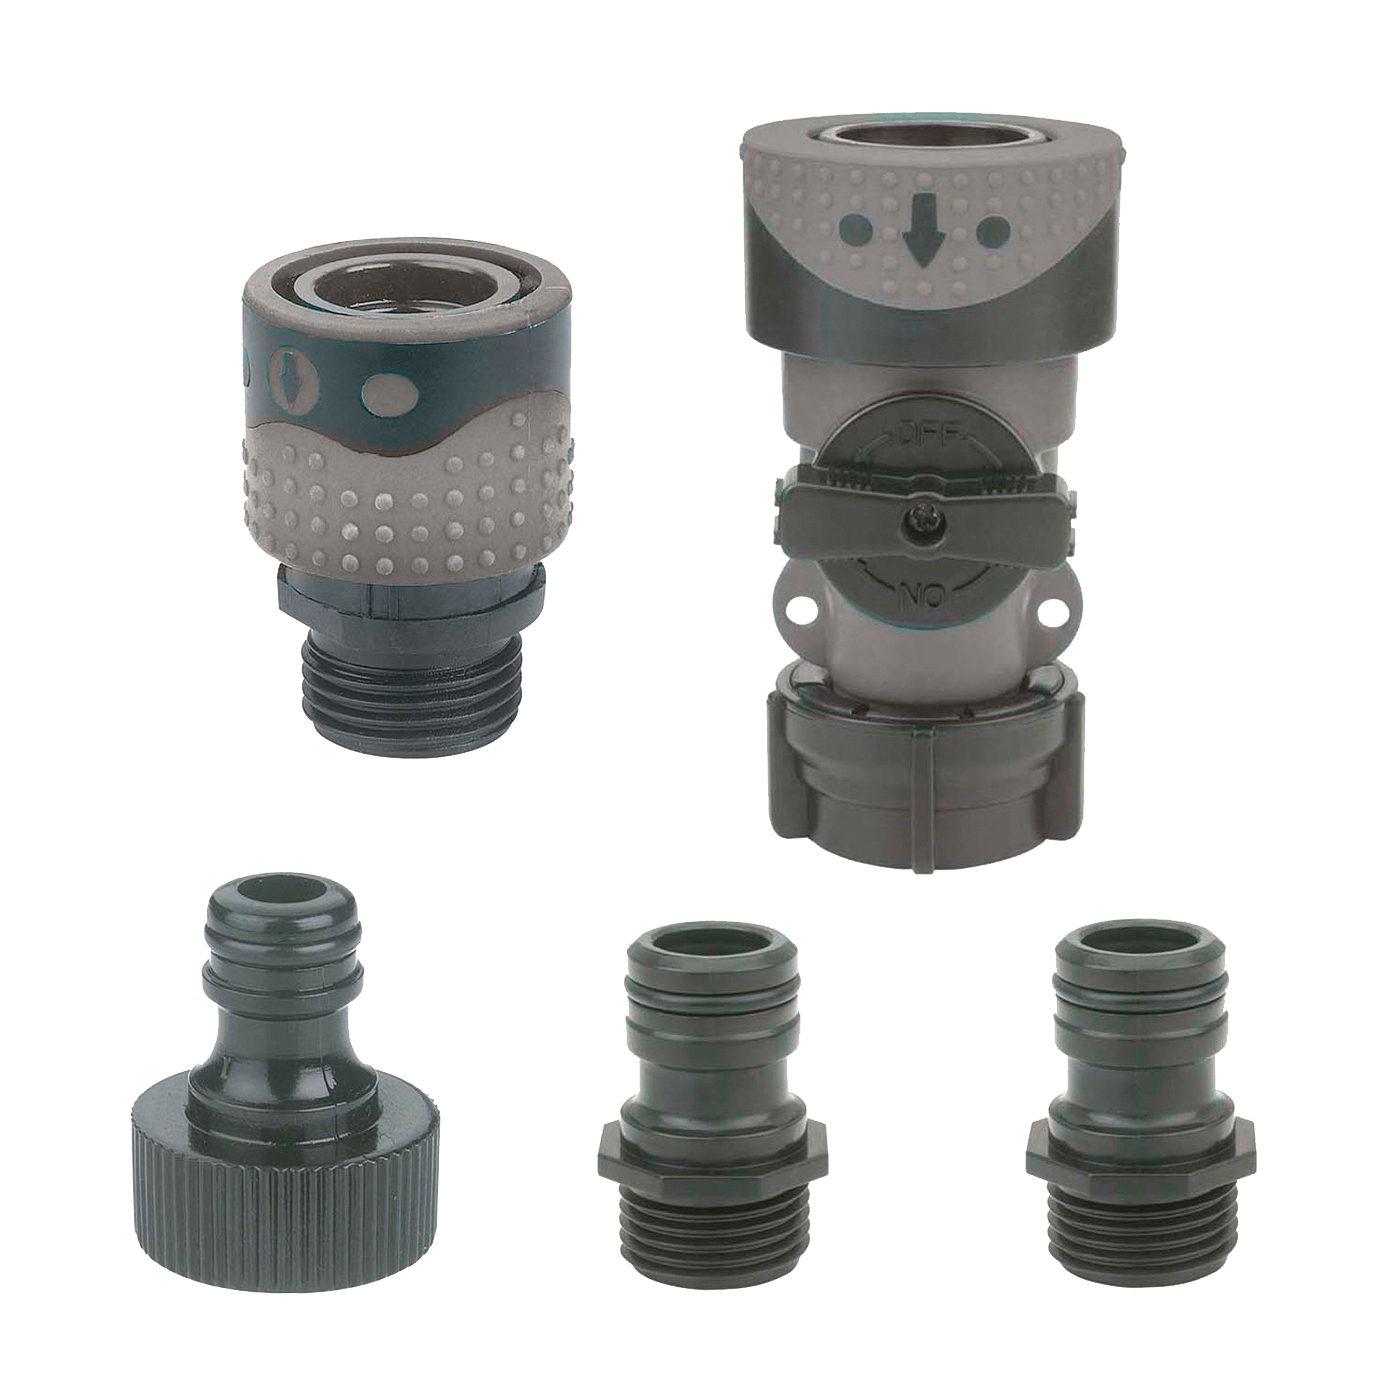 Picture of Gilmour 829404-1002 Quick Connector Set, Polymer